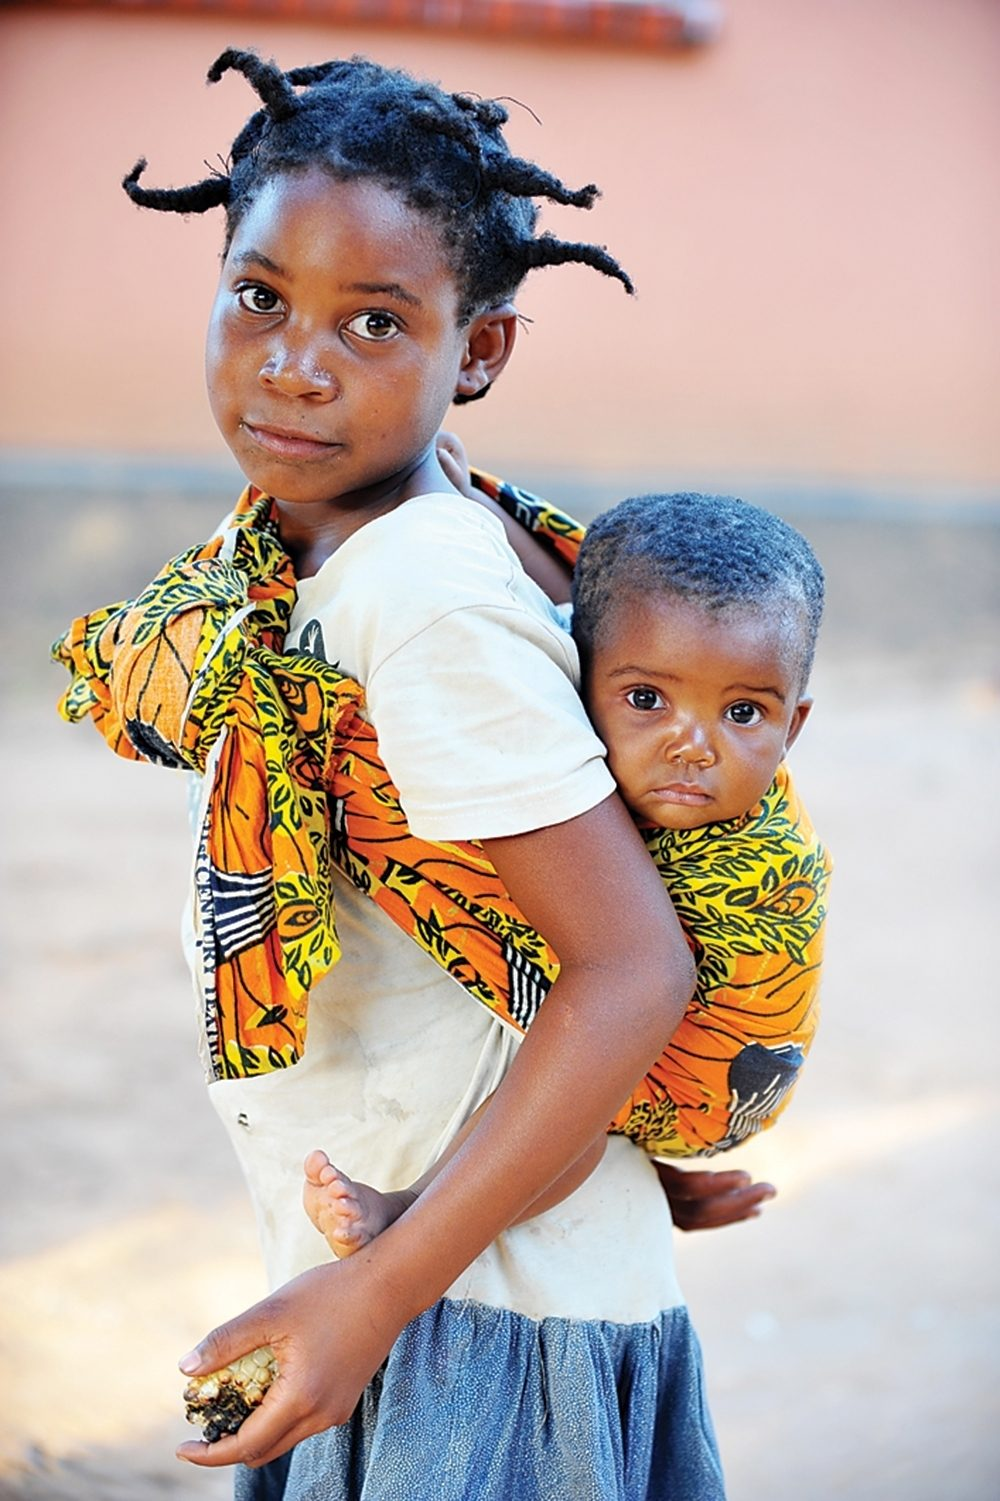 A Zambian girl carries a baby in a brightly-colored sling.